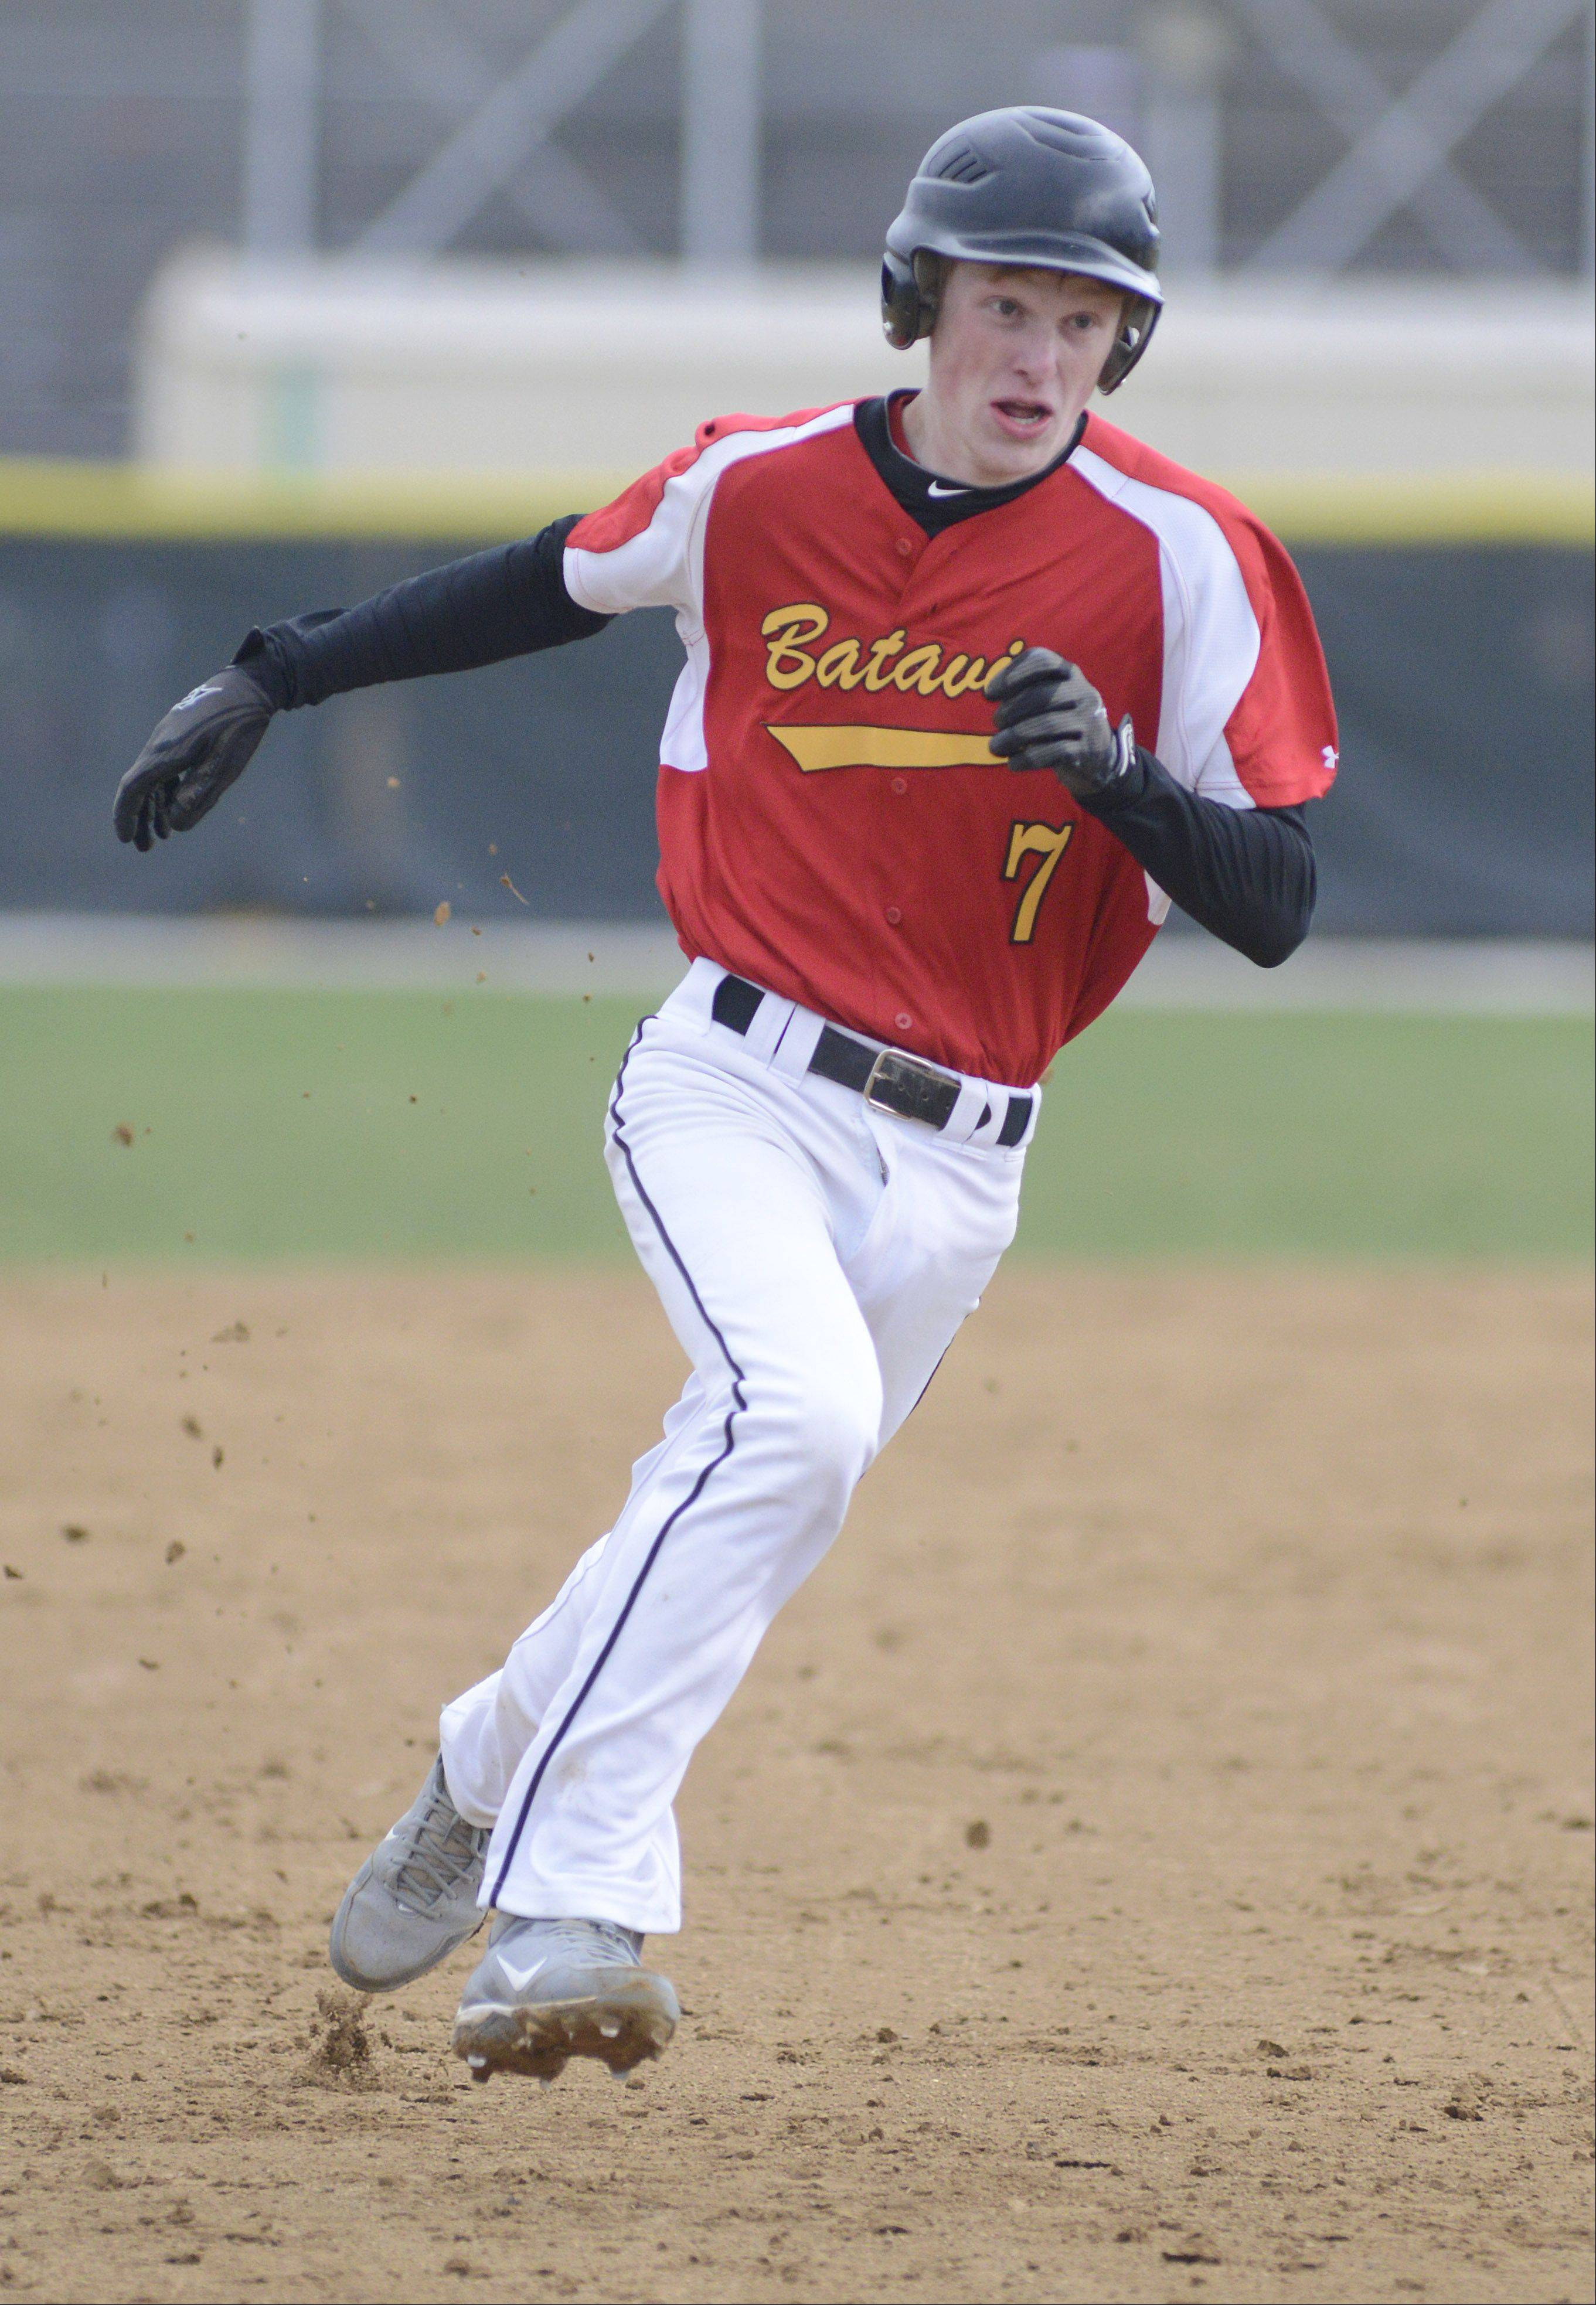 Batavia's Andrew Seigler heads for third base on his way to home plate in the second inning on Friday, April 12.